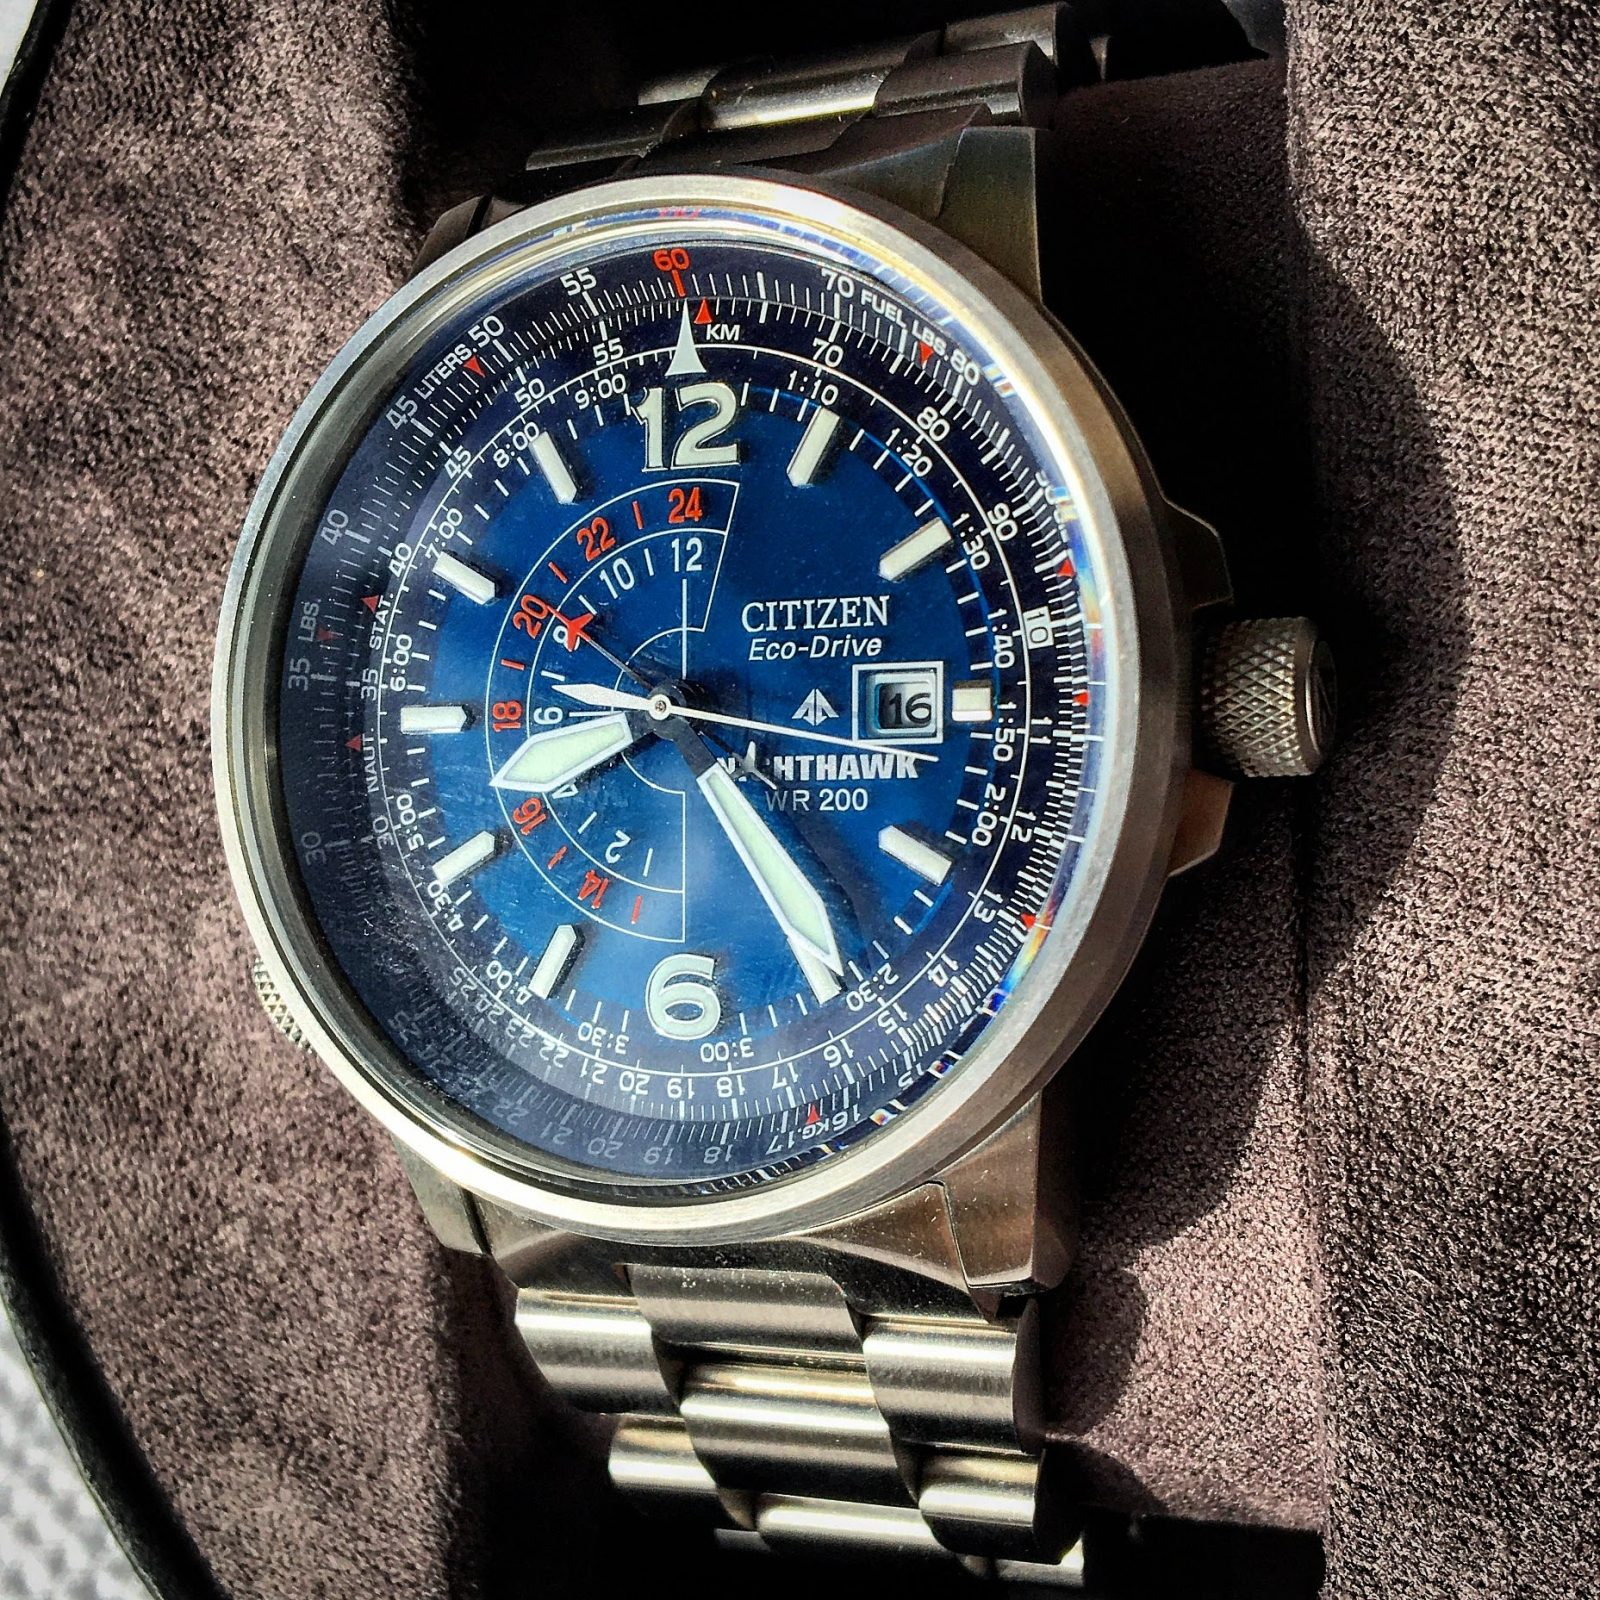 The striking Citizen Nighthawk dial